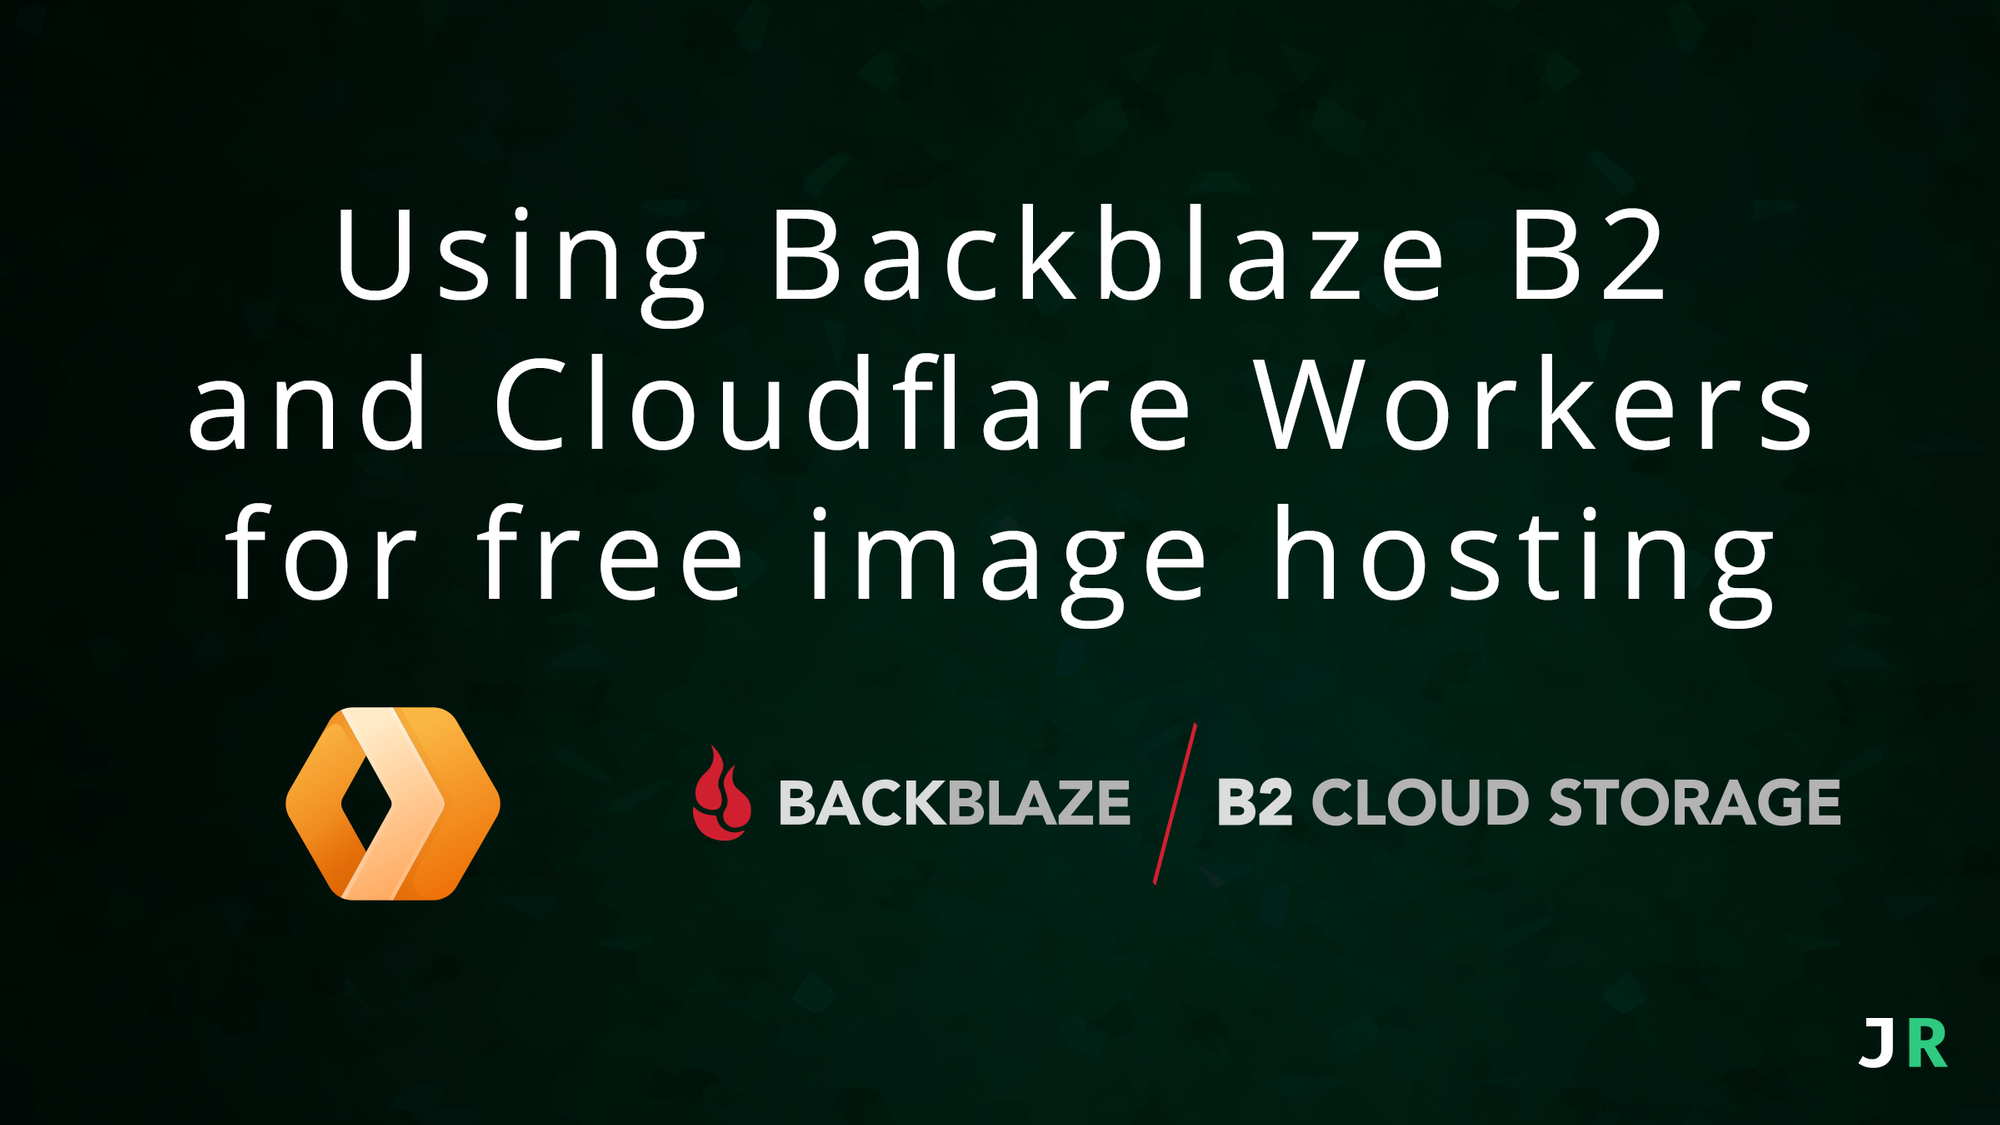 Using Backblaze B2 and Cloudflare Workers for free image hosting - RapidAPI